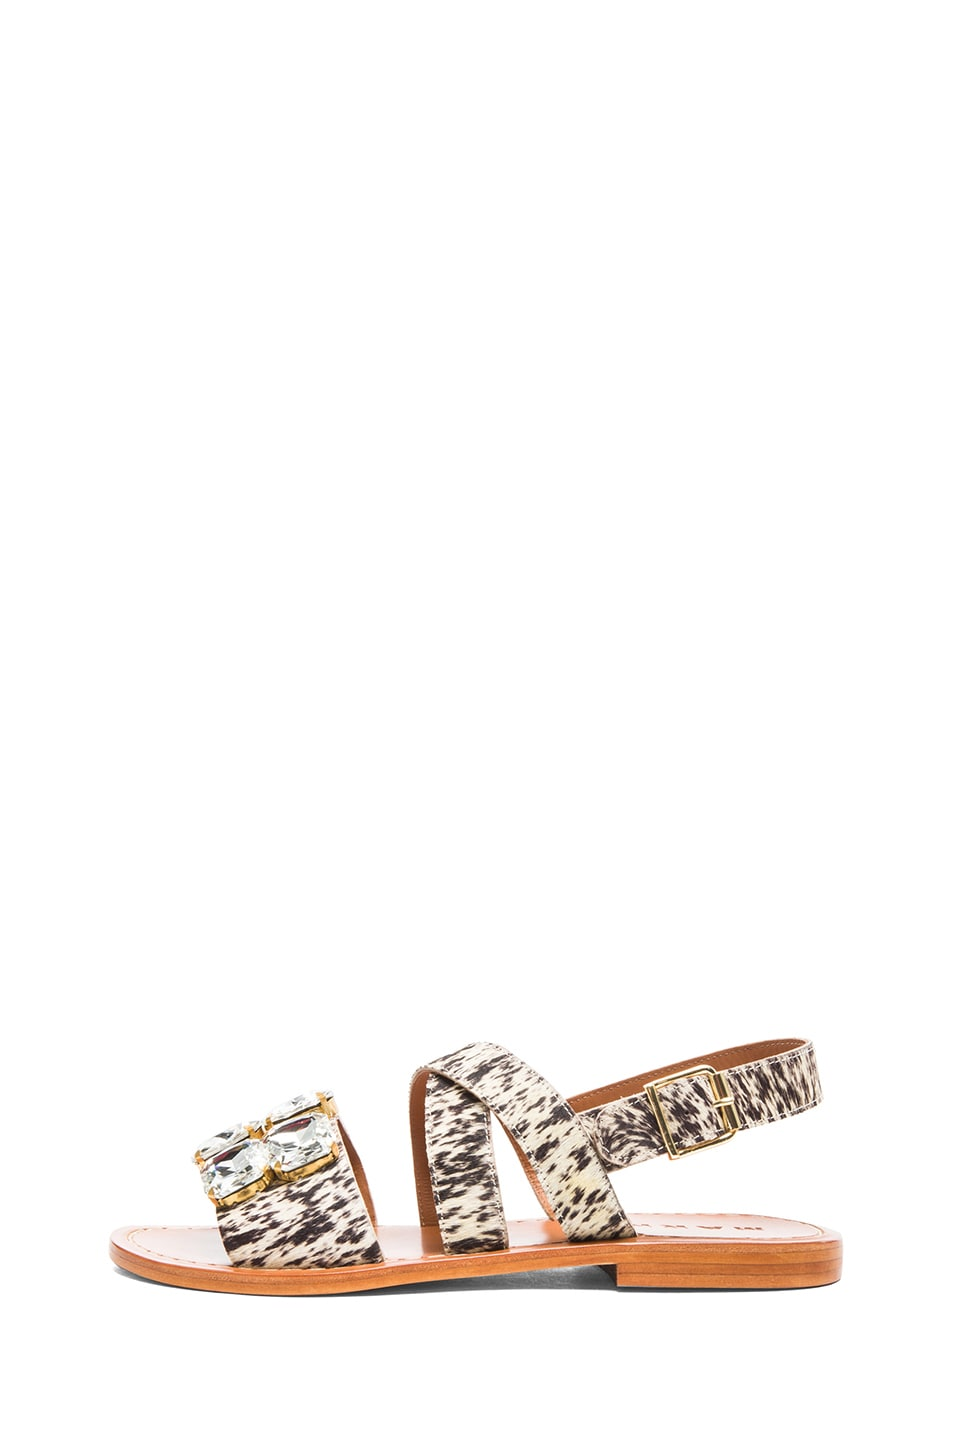 Image 1 of Marni Calf Hair Embellished Sandals with Large Stones in Leopard